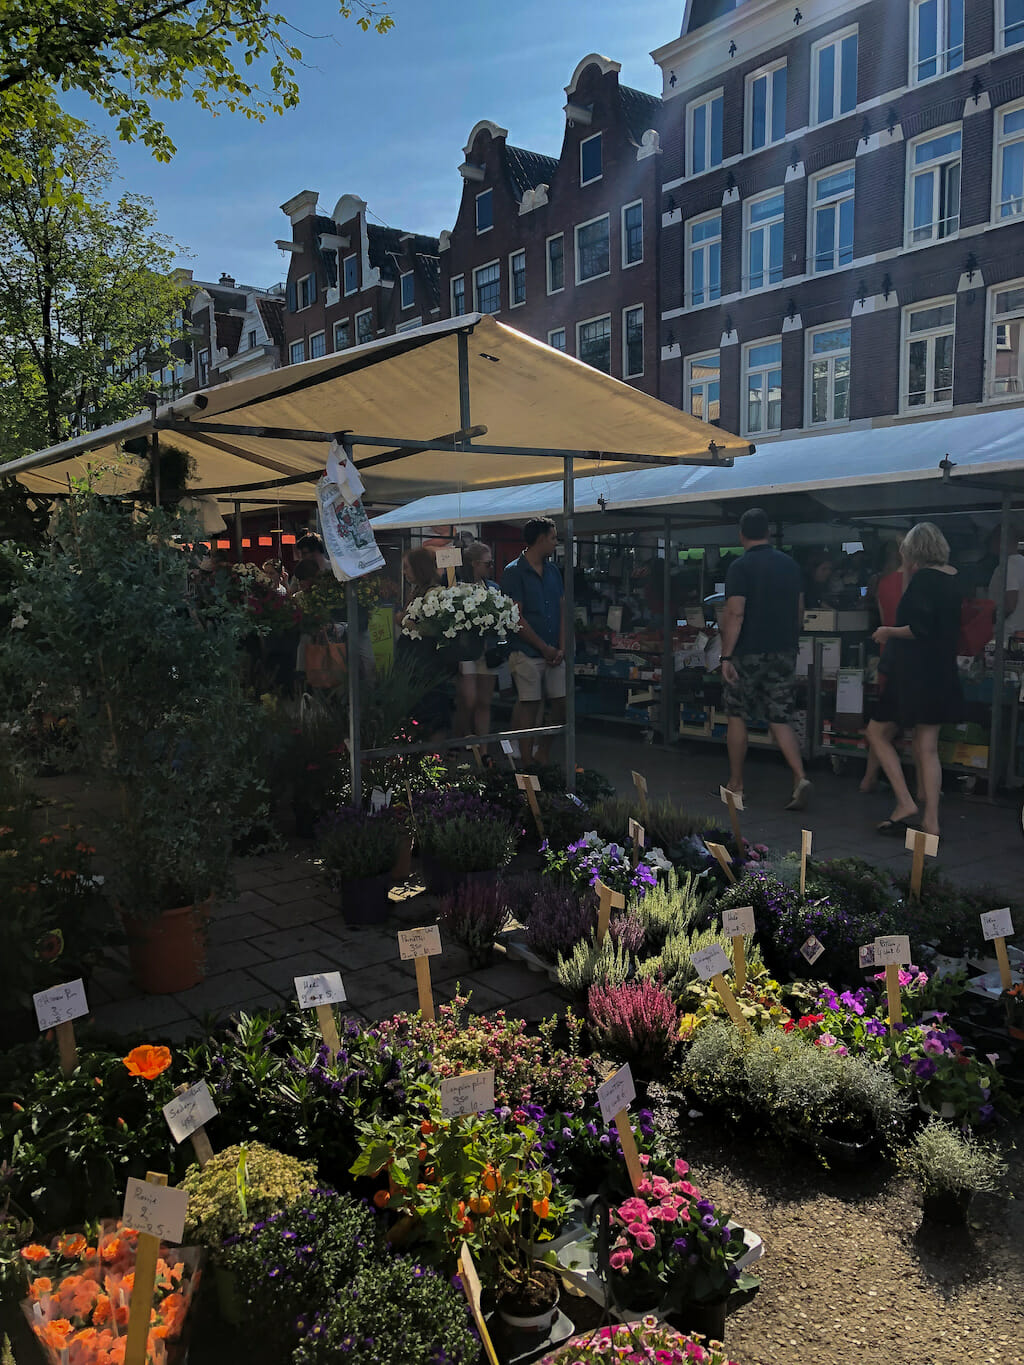 A lush of a plethora of potted plants clumped together in a street market booth in Amsterdam